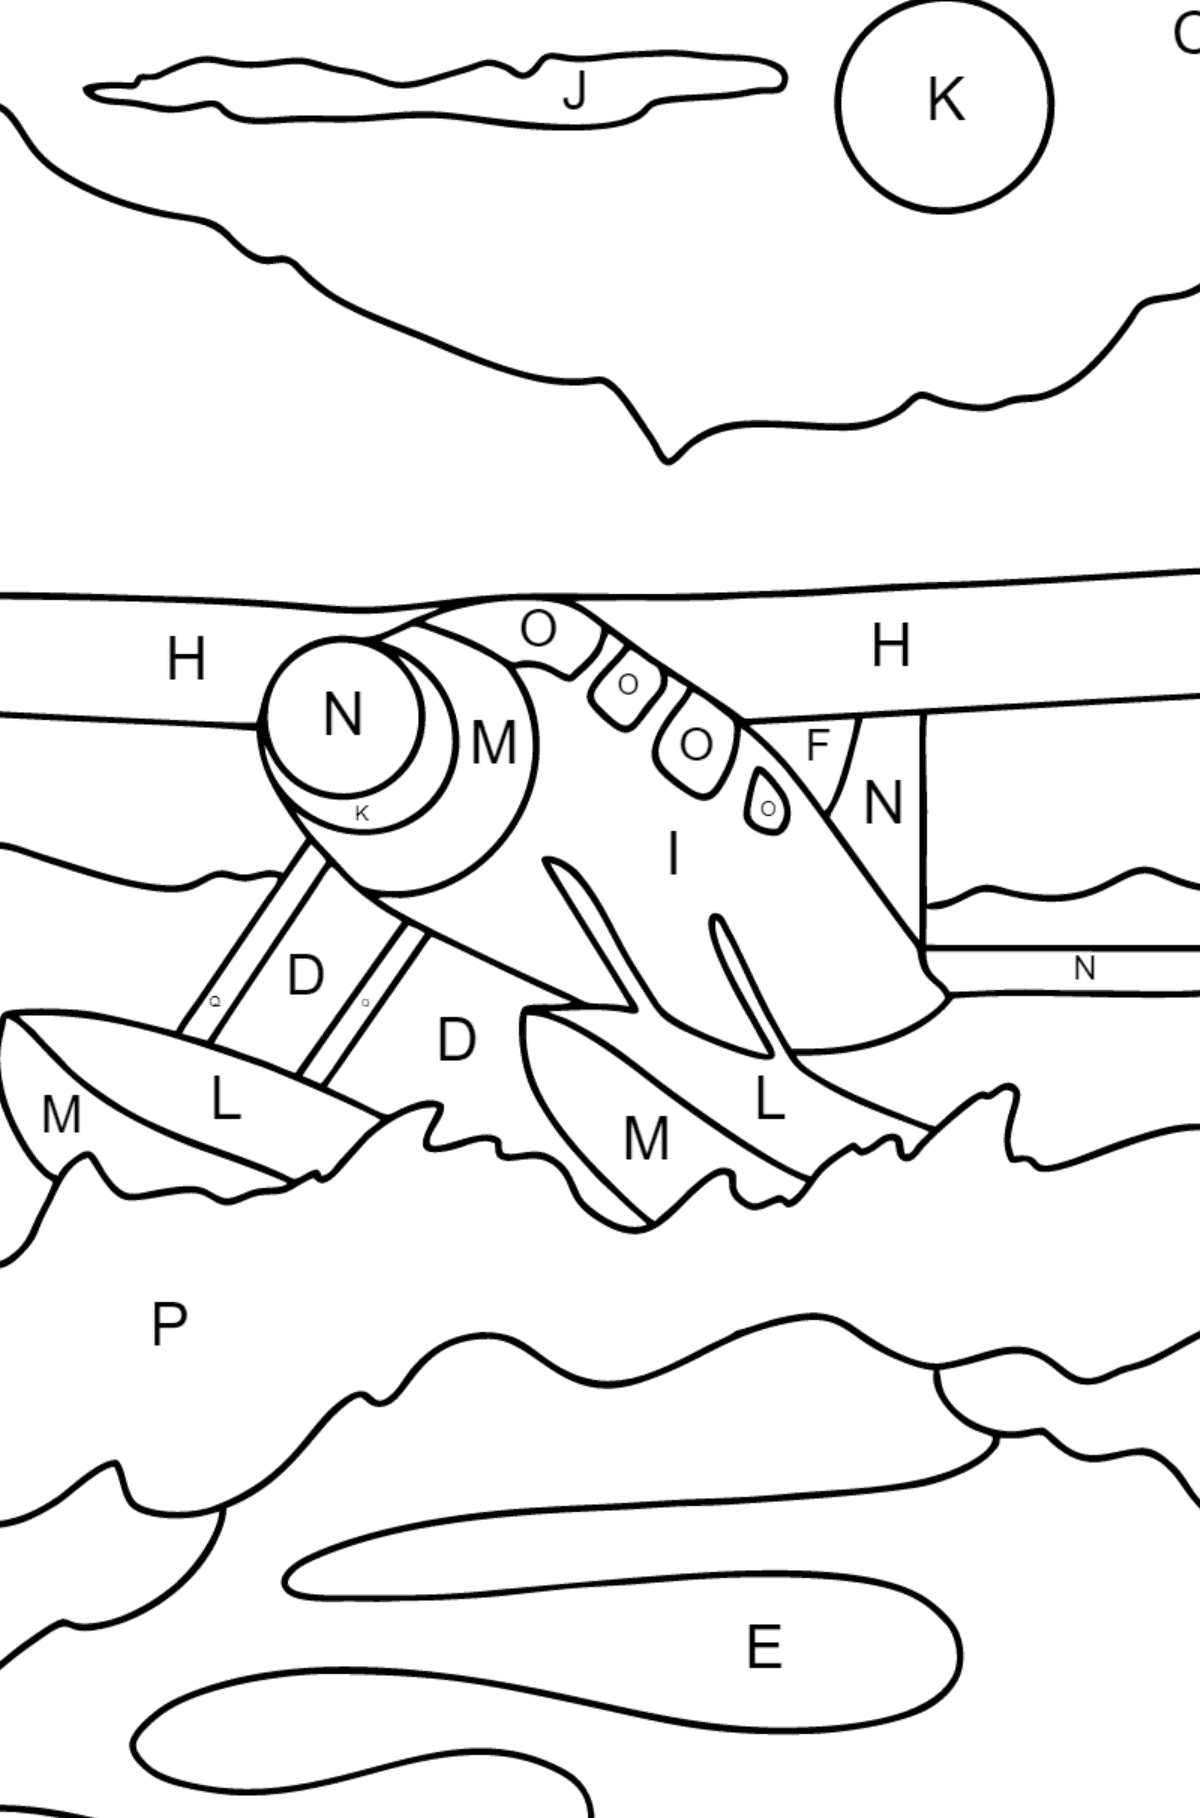 Coloring Page - A Hydroplane - Coloring by Letters for Children